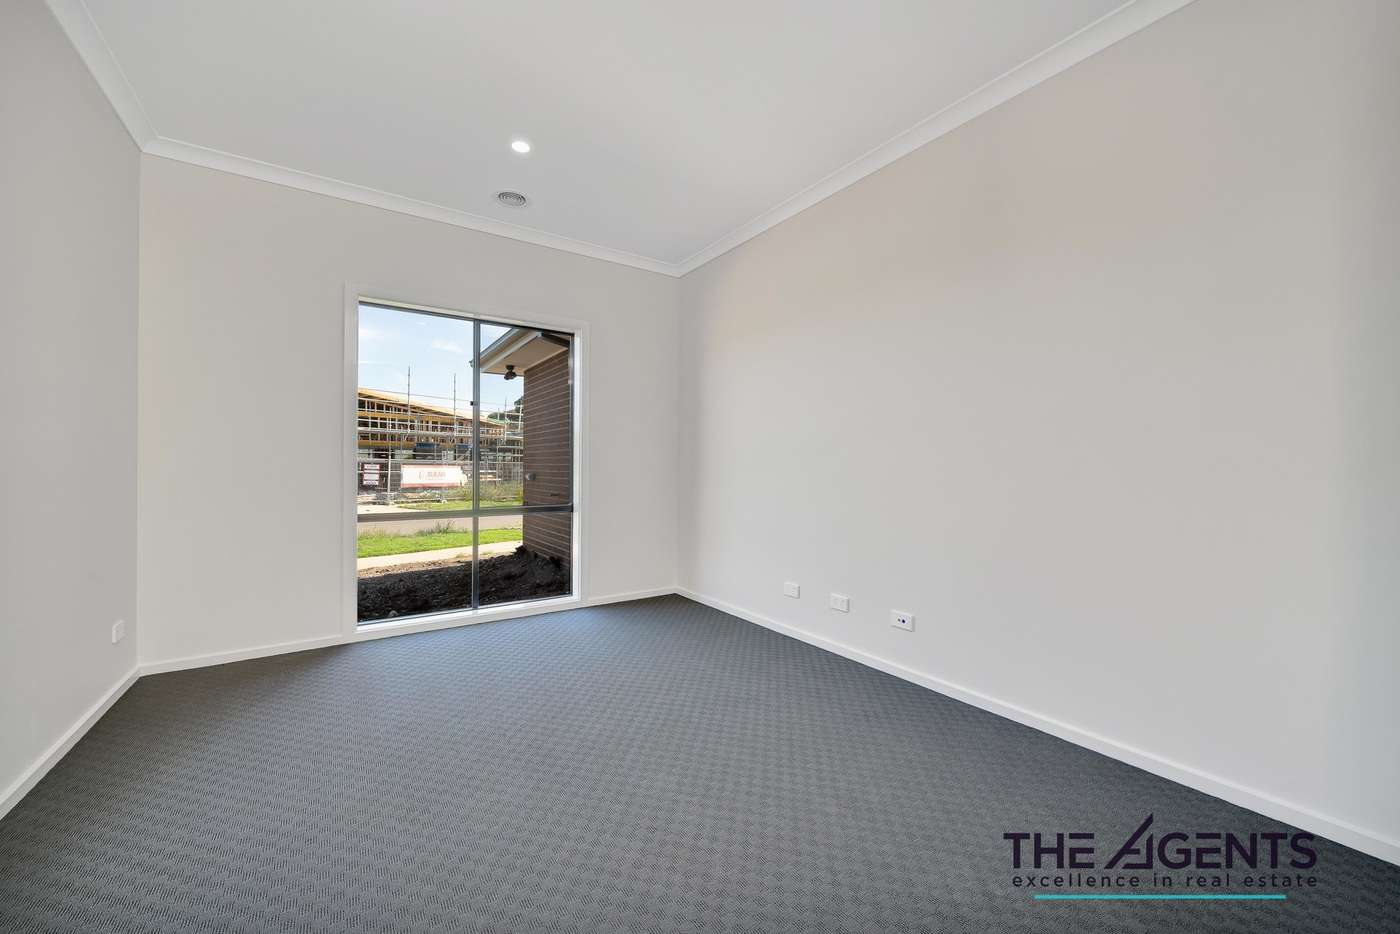 Seventh view of Homely house listing, 2 Braeside Drive, Wyndham Vale VIC 3024